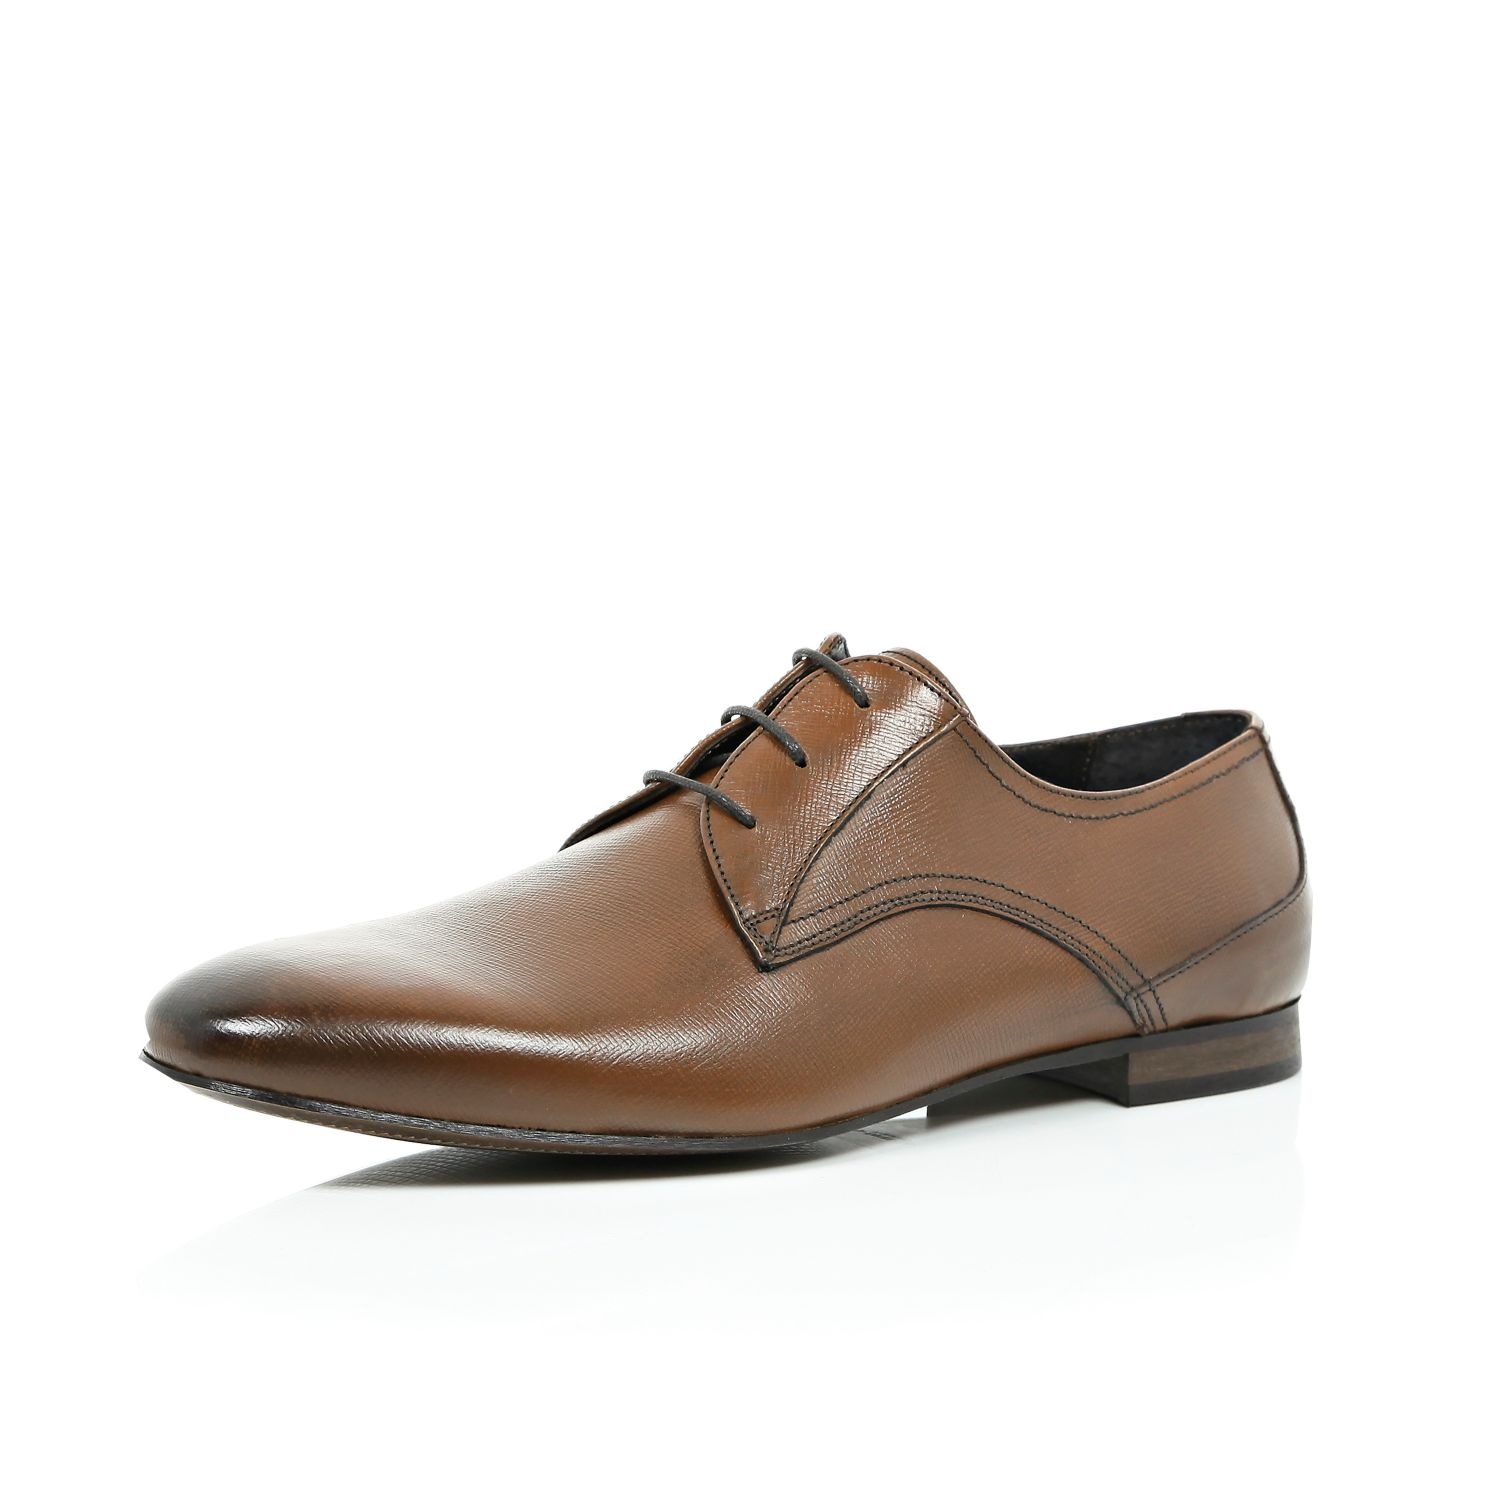 river island brown textured leather formal shoes in brown